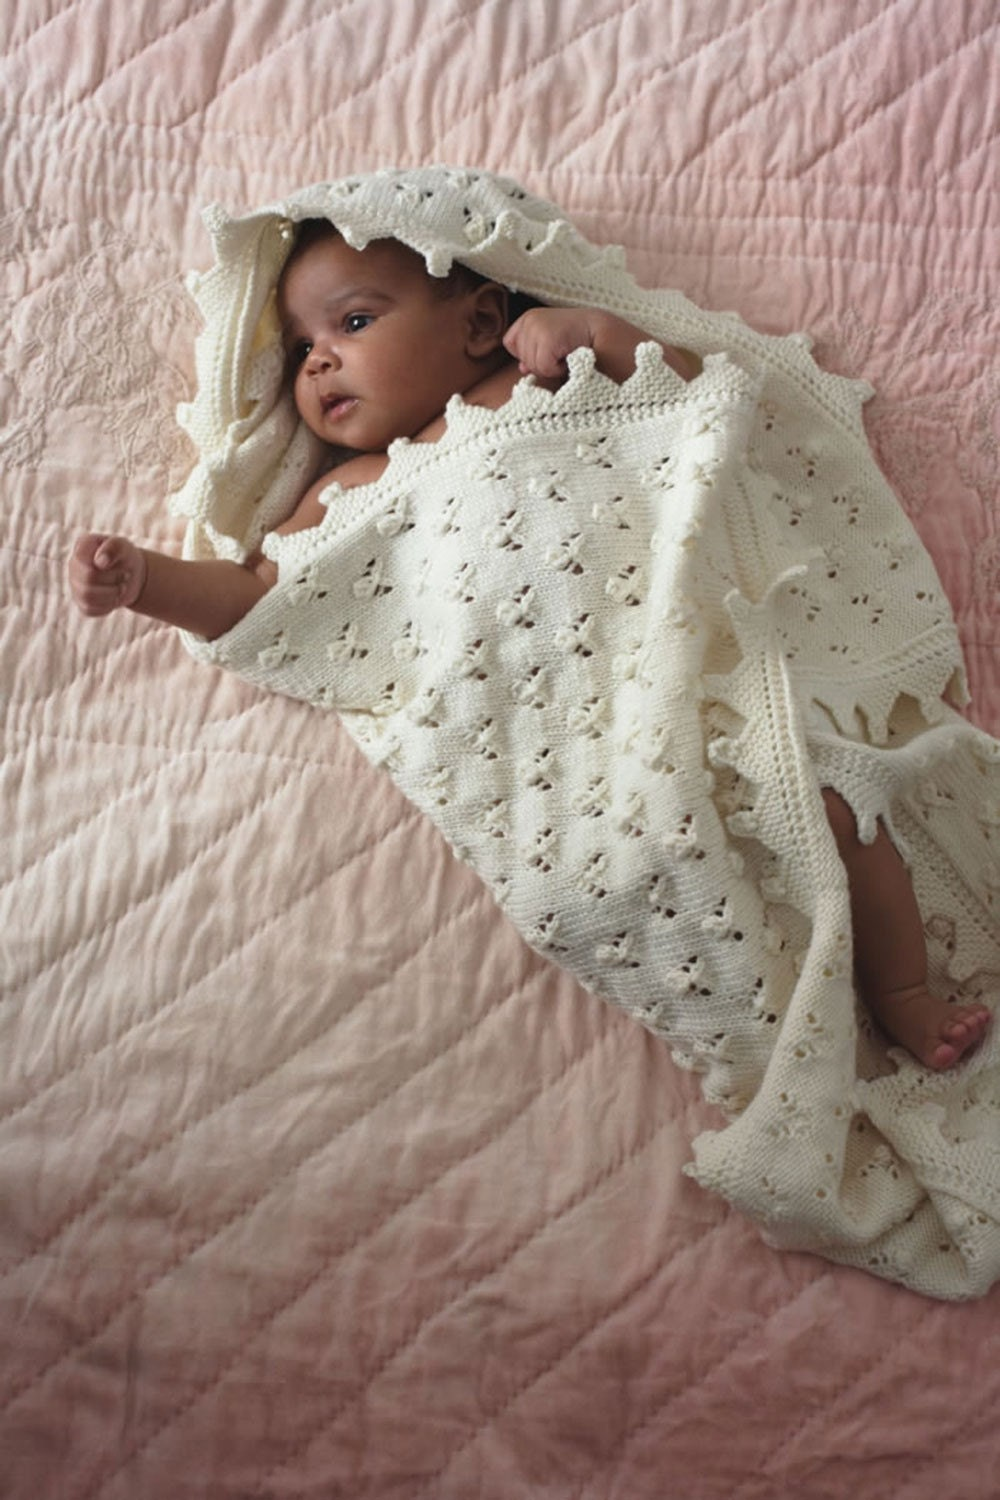 Free Knitting Pattern Baby Shawl Dk : baby knitting pattern for baby shawl blanket dk yarn